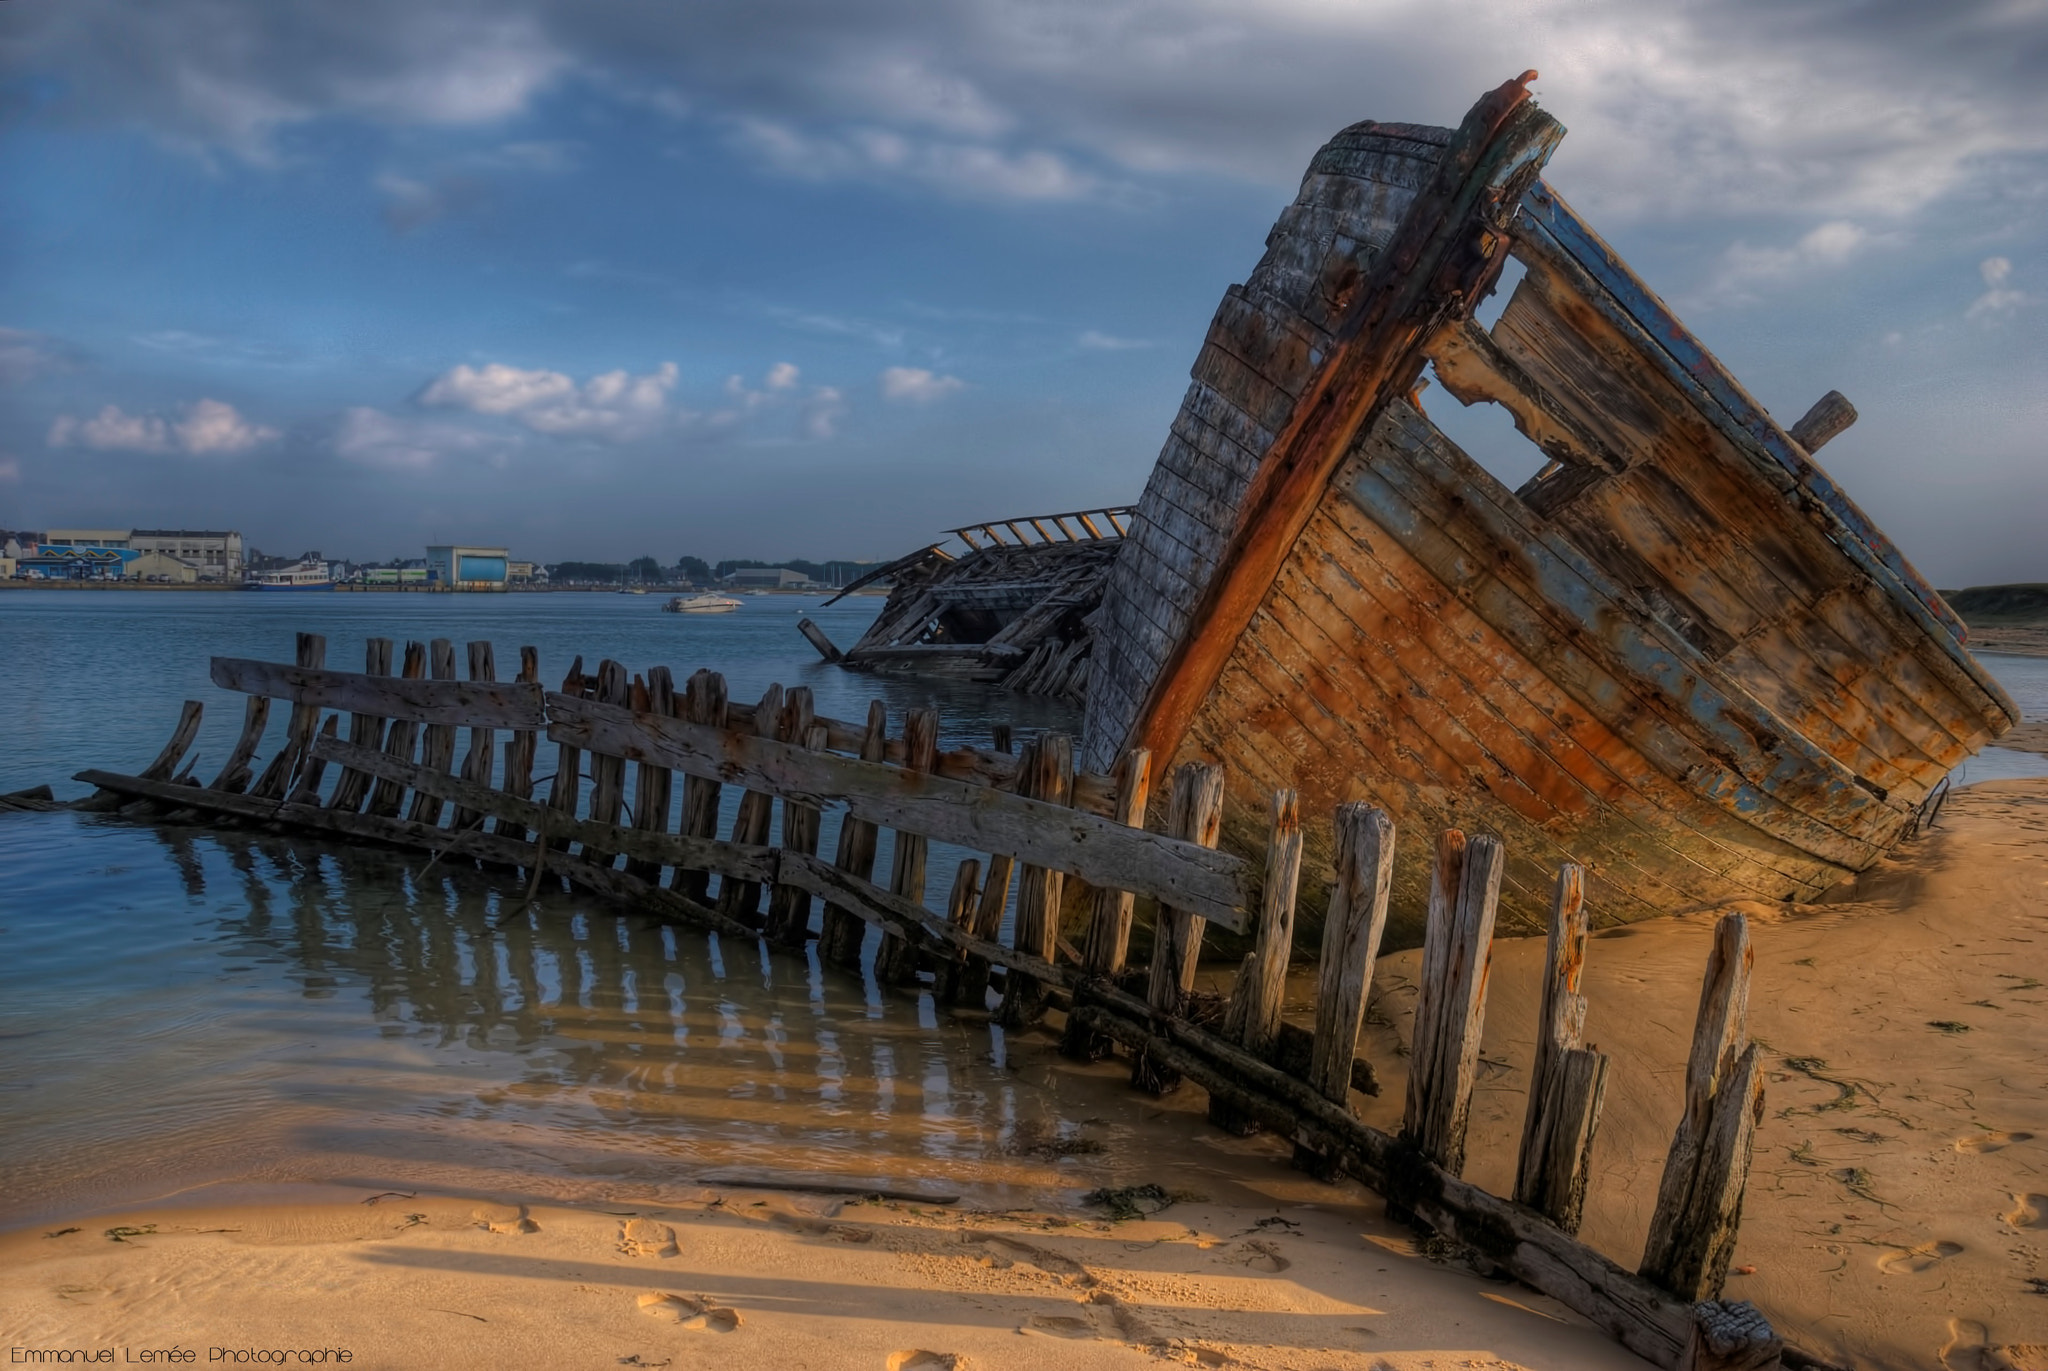 Photograph Shipwrecked by Emmanuel LEMEE on 500px